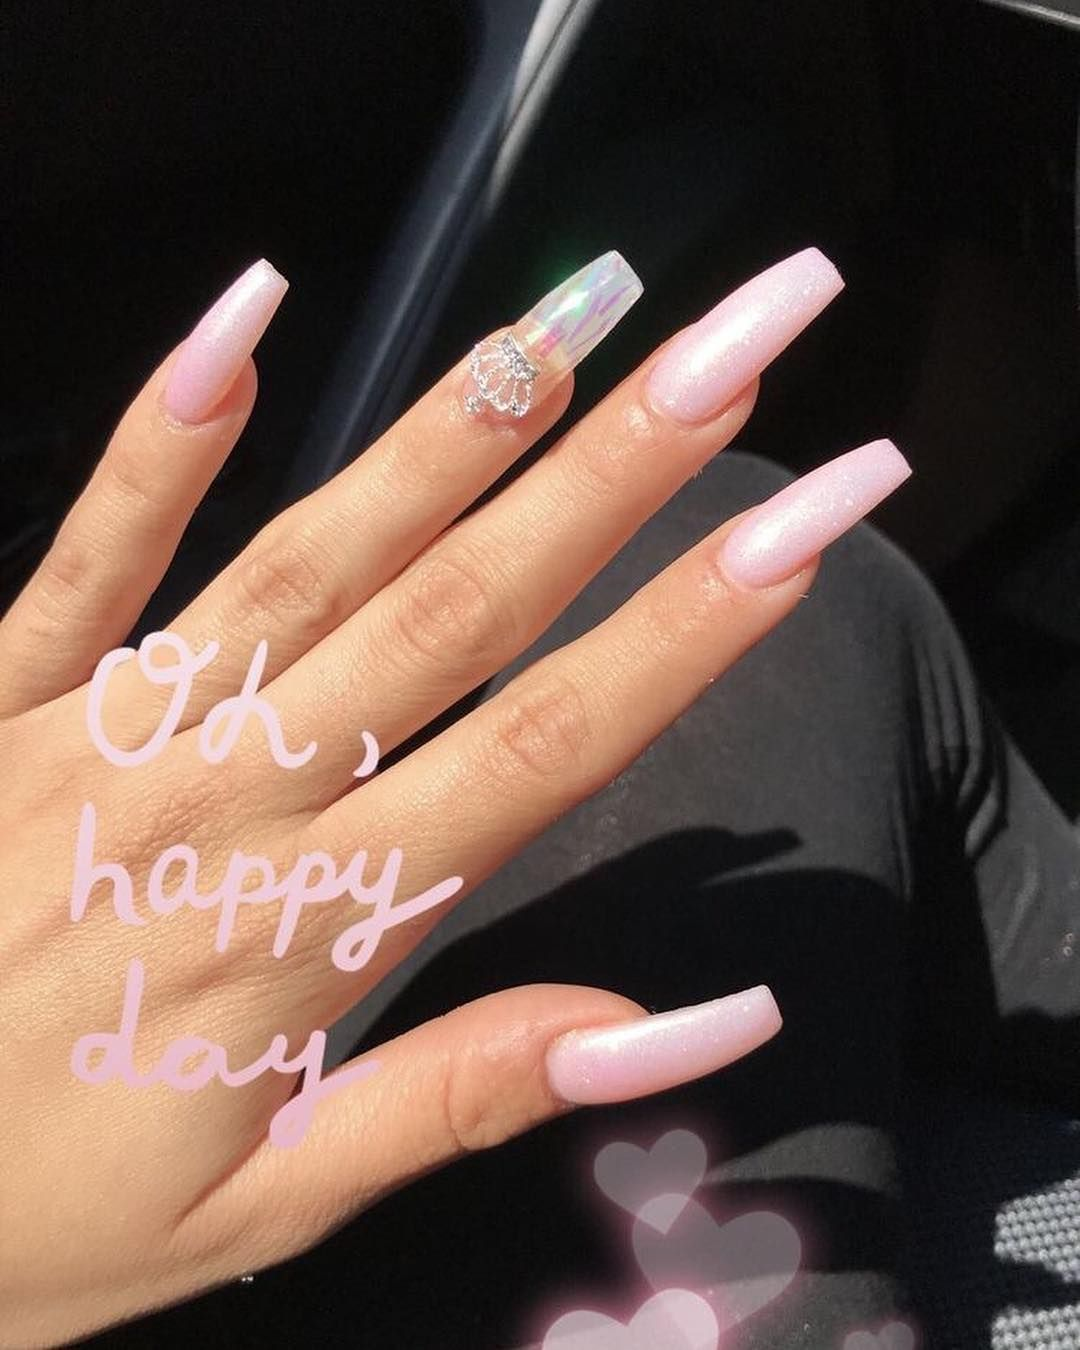 20 Lovely Baddie Nails Ideas To Try Right Now Baddieacrylicnailideas Baddienailsideas In 2020 Nails Simple Nails Pretty Nail Designs Acrylics